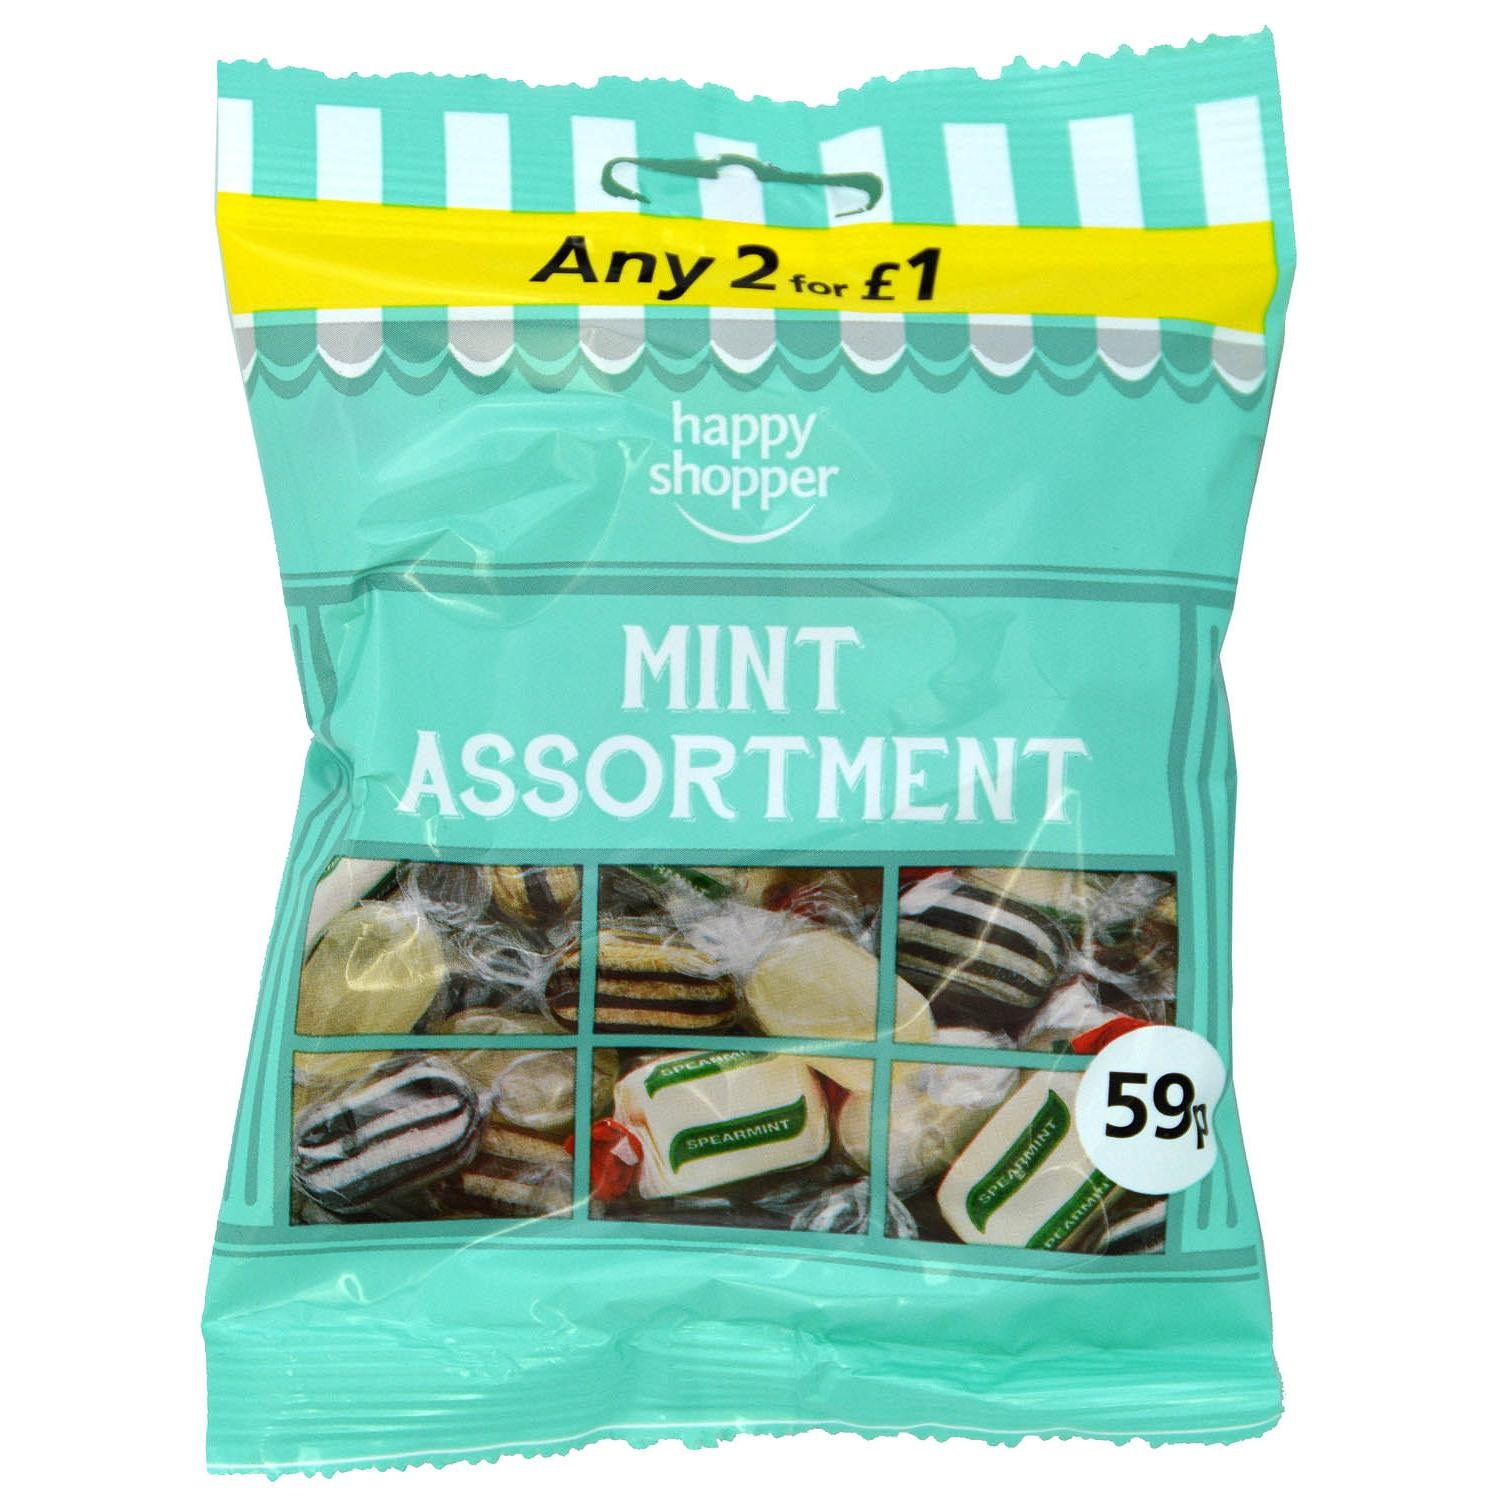 Happy Shopper Mint Assortment 80g - Pfefferminzbonbons-Sortiment